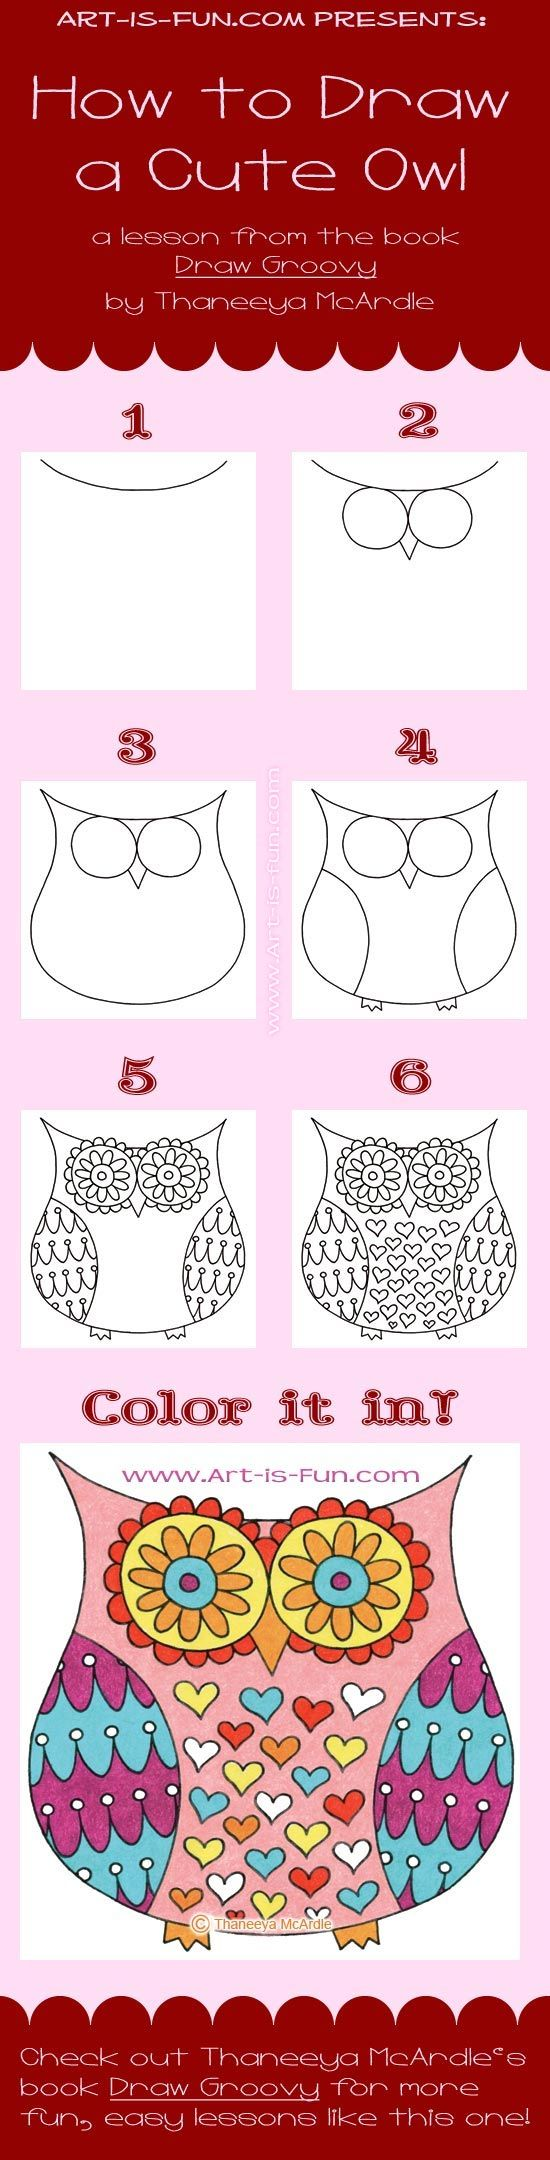 learn how to draw a petite owl